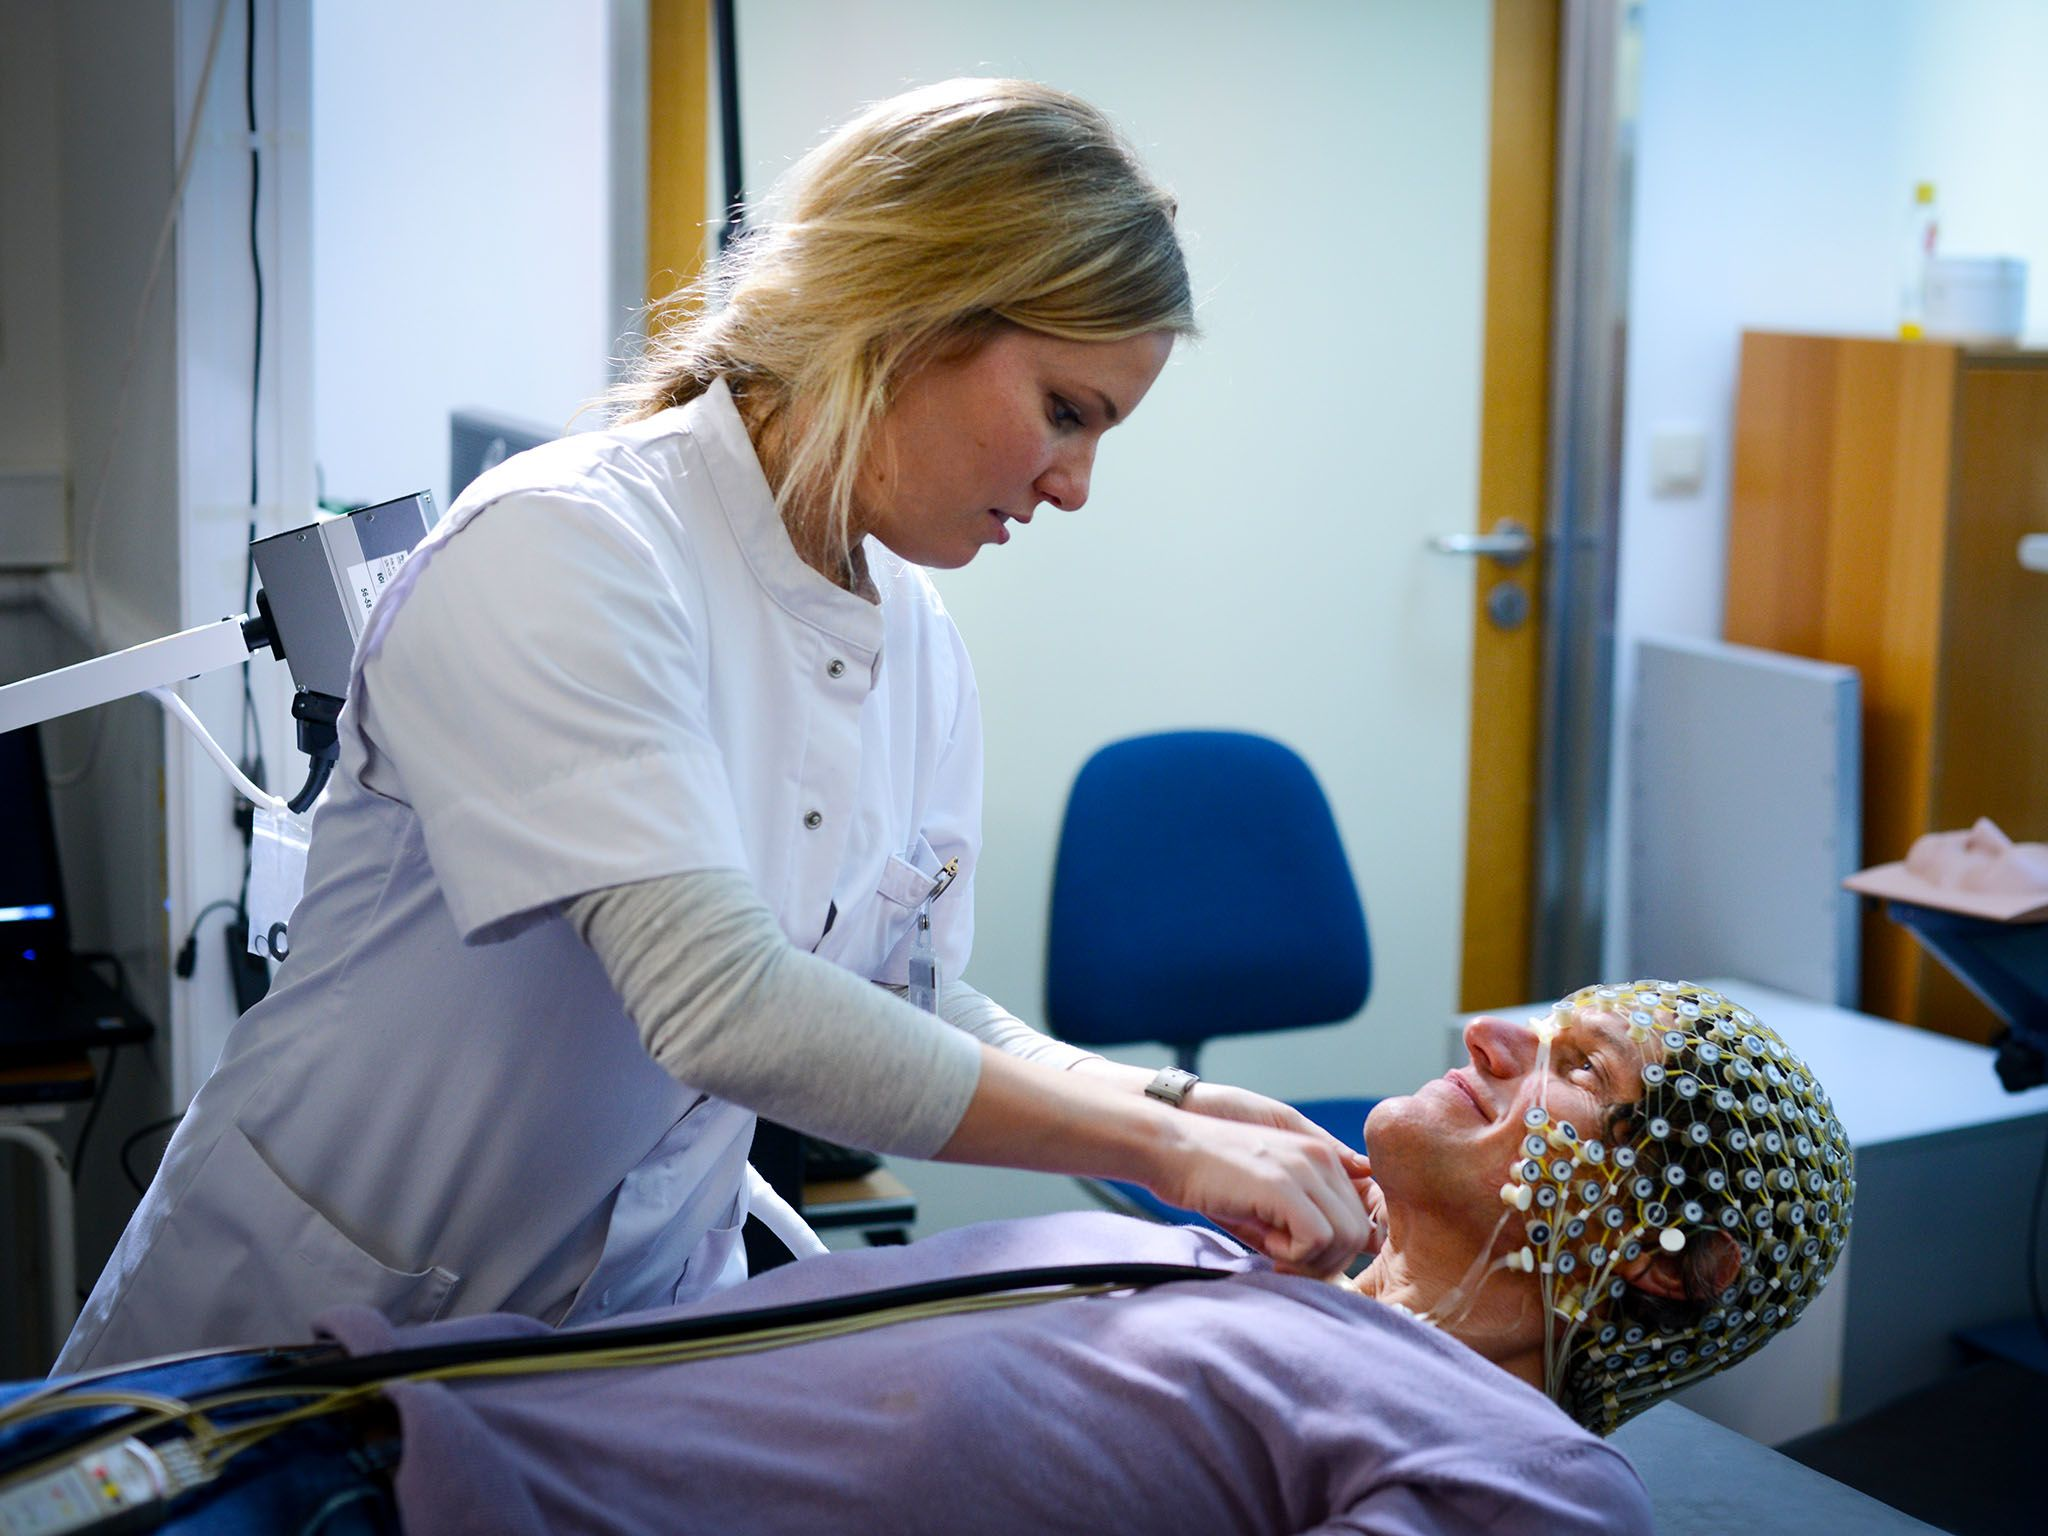 Liege, Belgium: Vanessa Charland setting up the EEG cap for Dr Steven Laureys whilst he's laying... [Photo of the day - ژوئن 2016]